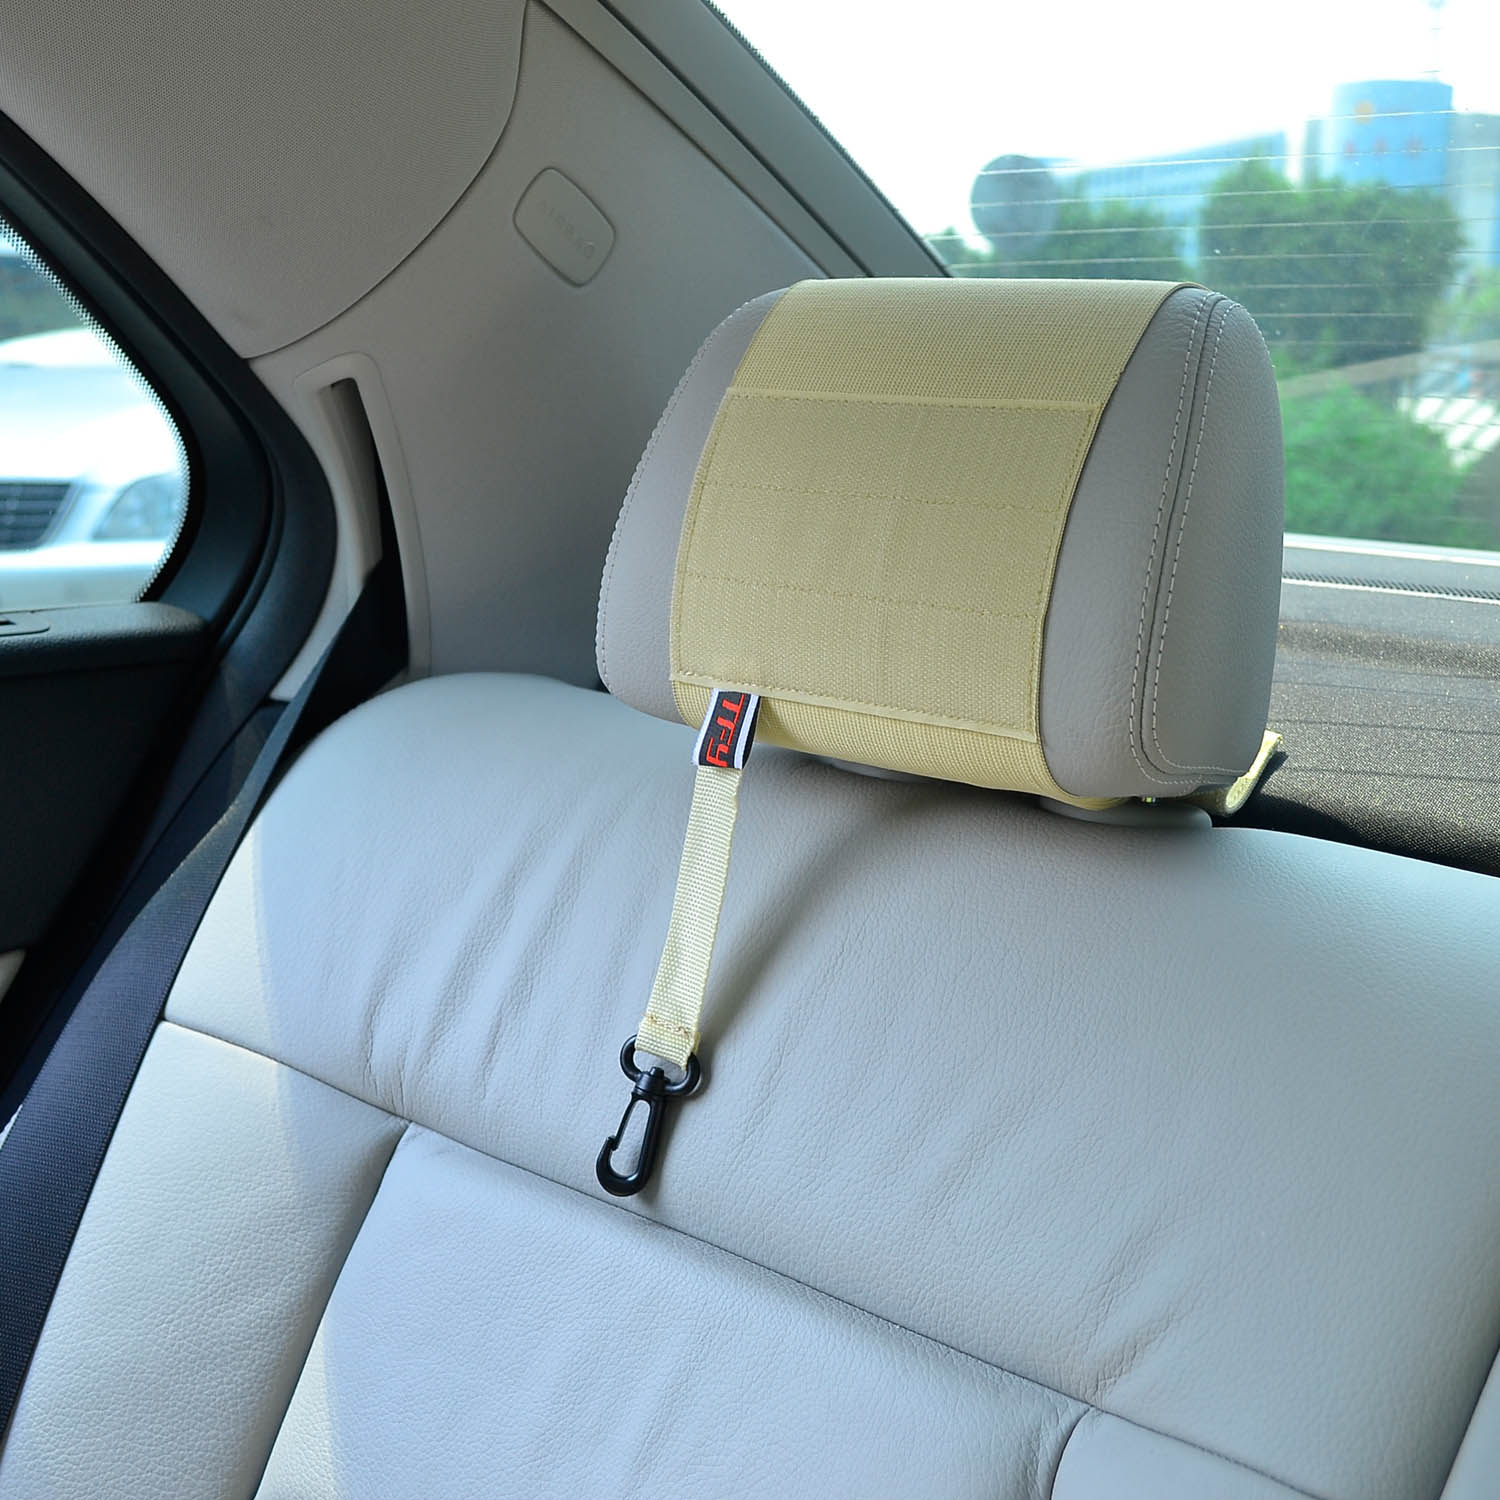 TFY Vehicle Headrest Velcro-Strap - Accessory for TFY See-My-Baby ...